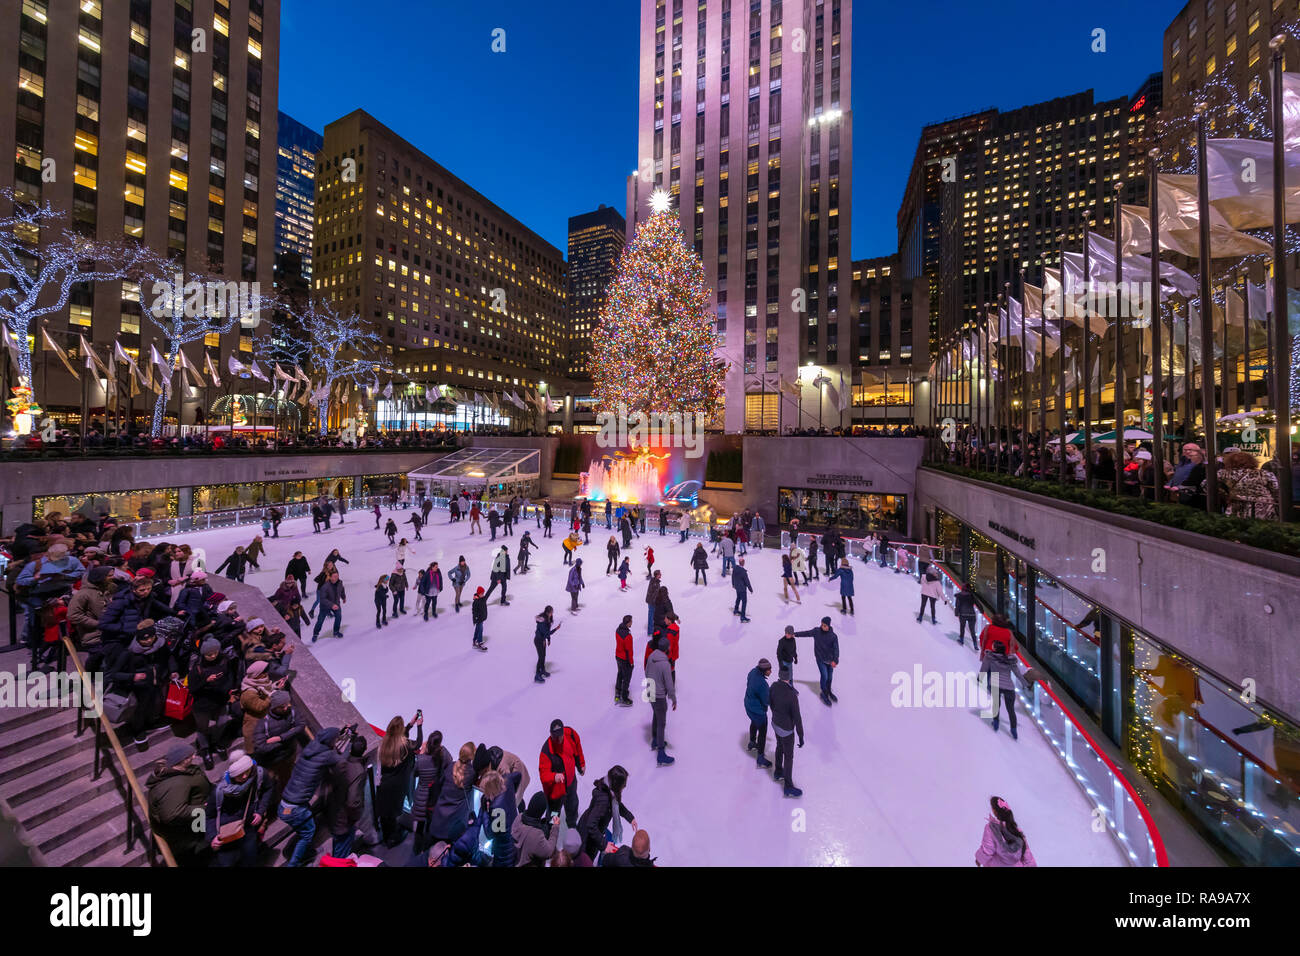 Ice Skaters at Ice skating rink at the Christmas Tree at Rockefeller Center. - Stock Image